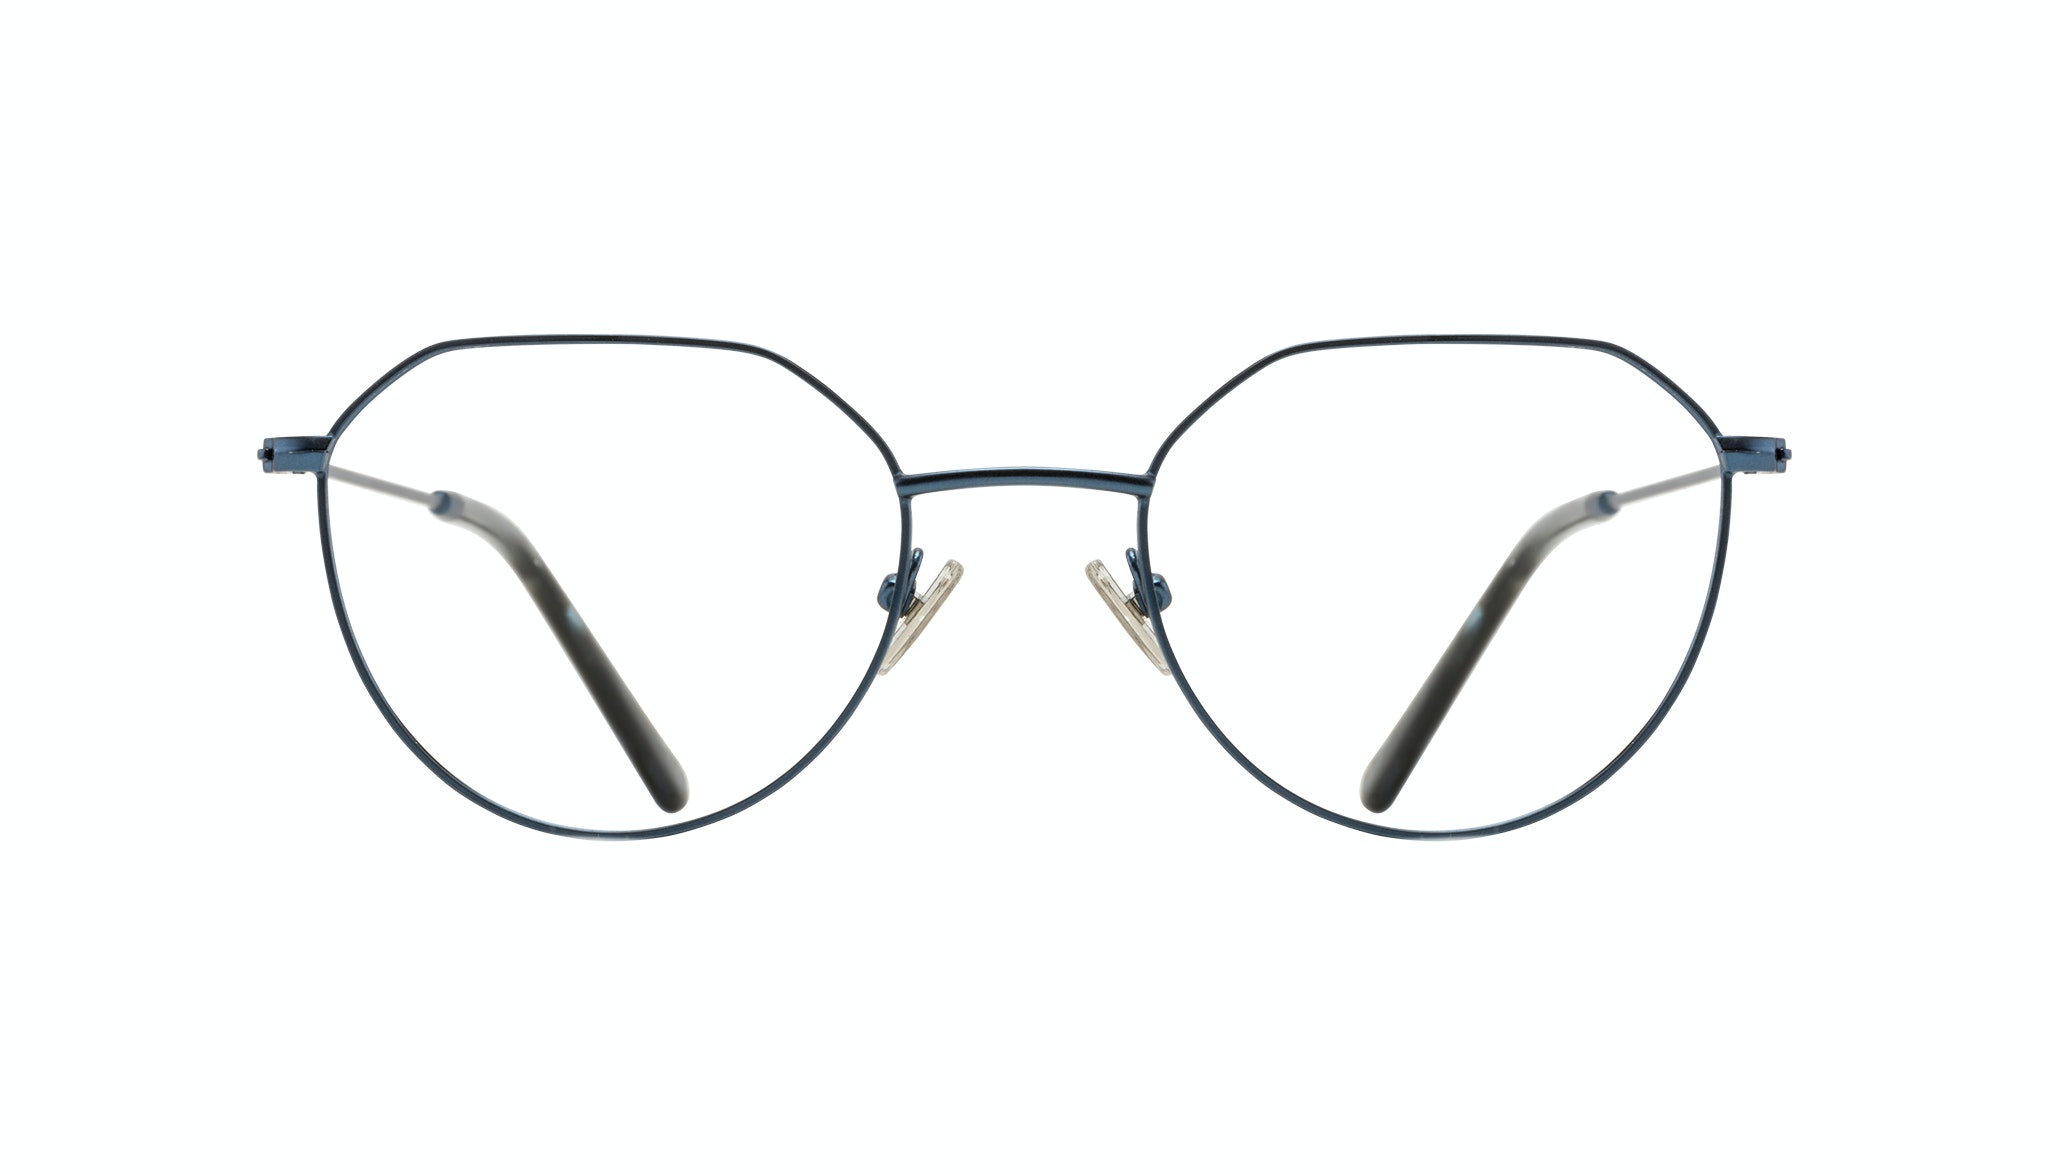 Affordable Fashion Glasses Round Eyeglasses Women Prism Marine Front